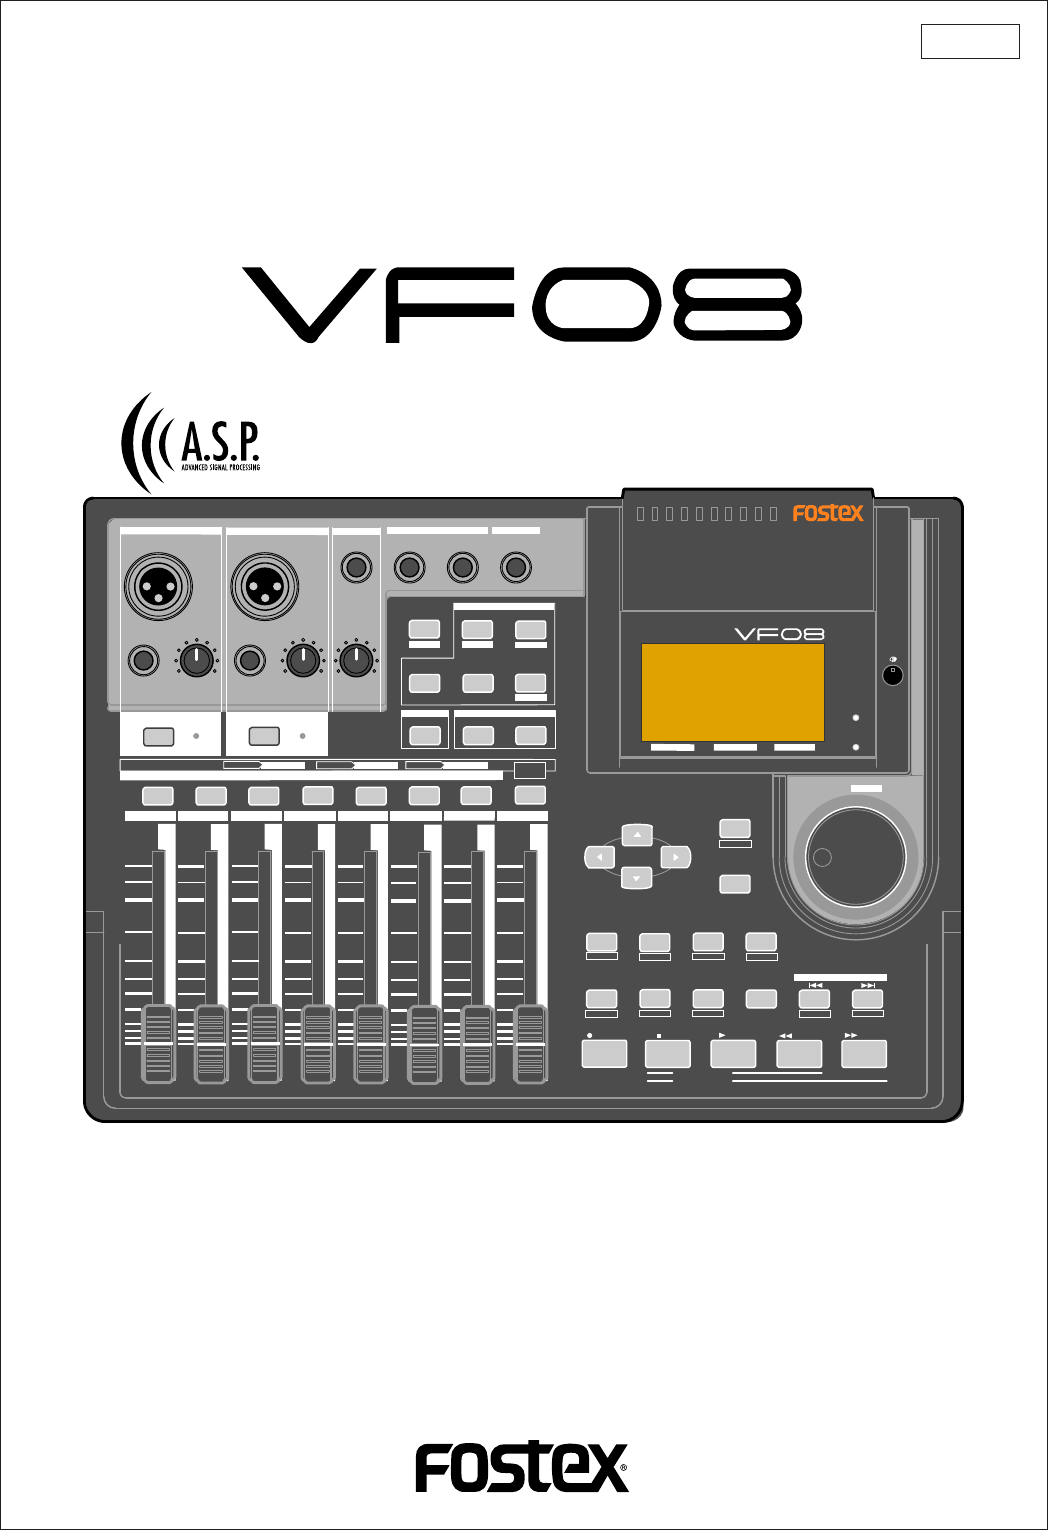 fostex musical instrument vf08 user guide manualsonline com rh music manualsonline com Fostex MR16 Fostex T50RP